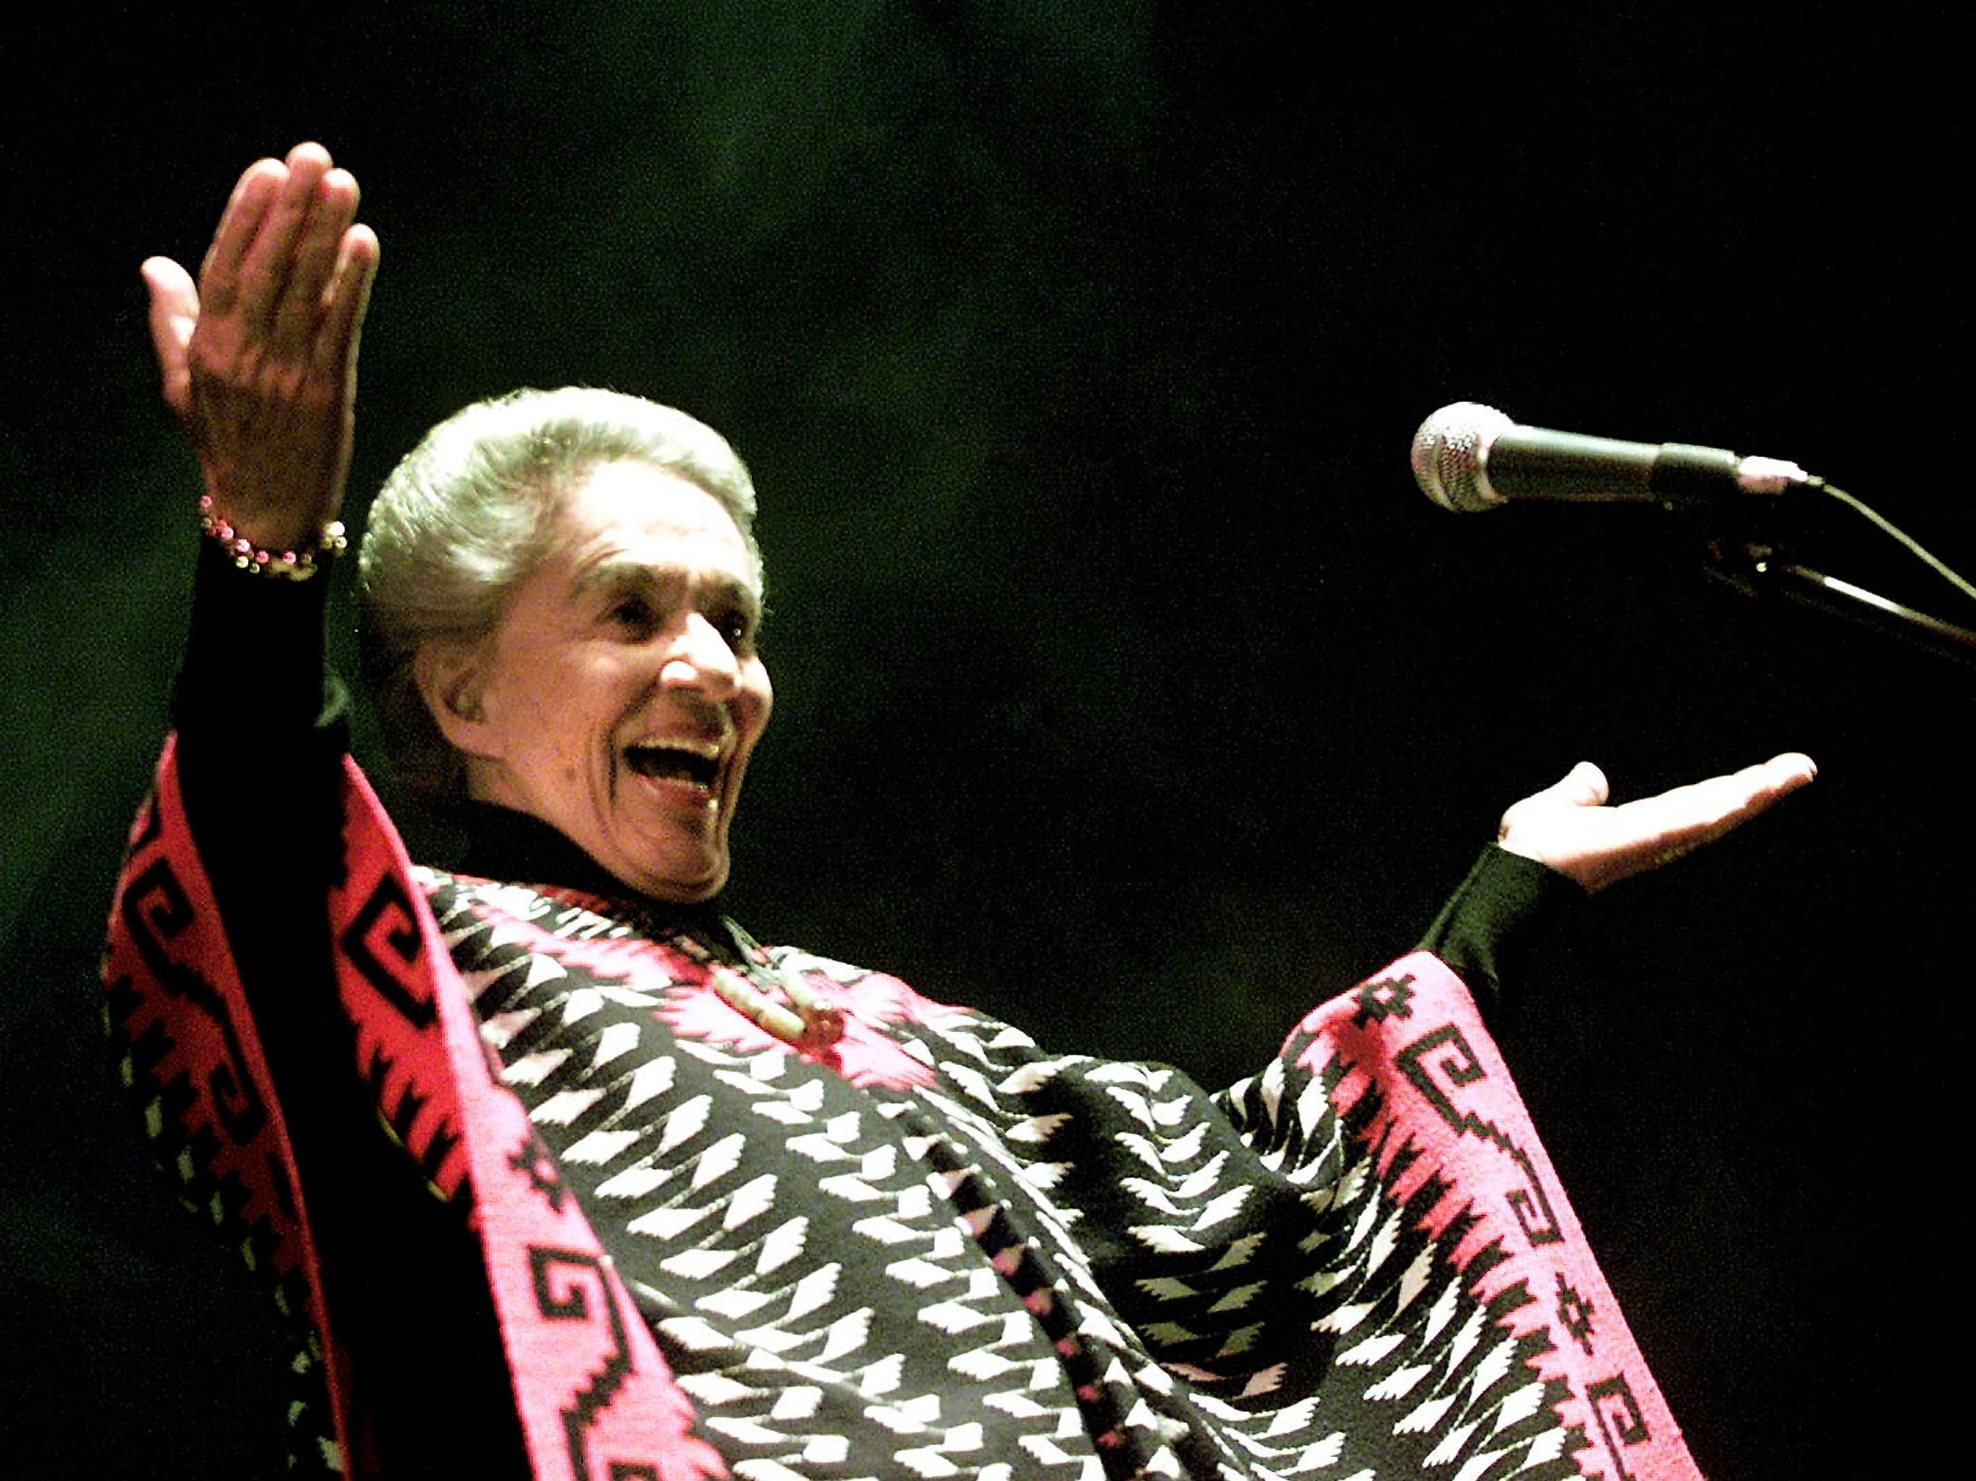 Costa Rican singer Chavela Vargas, 83, faces the crowd 12 October 2002, during her first presentation in Lima, Peru. Iconic Mexican singer Chavela Vargas, known for her mastery of the sad and sultry bolero, died on August 5, 2012. She was 93.